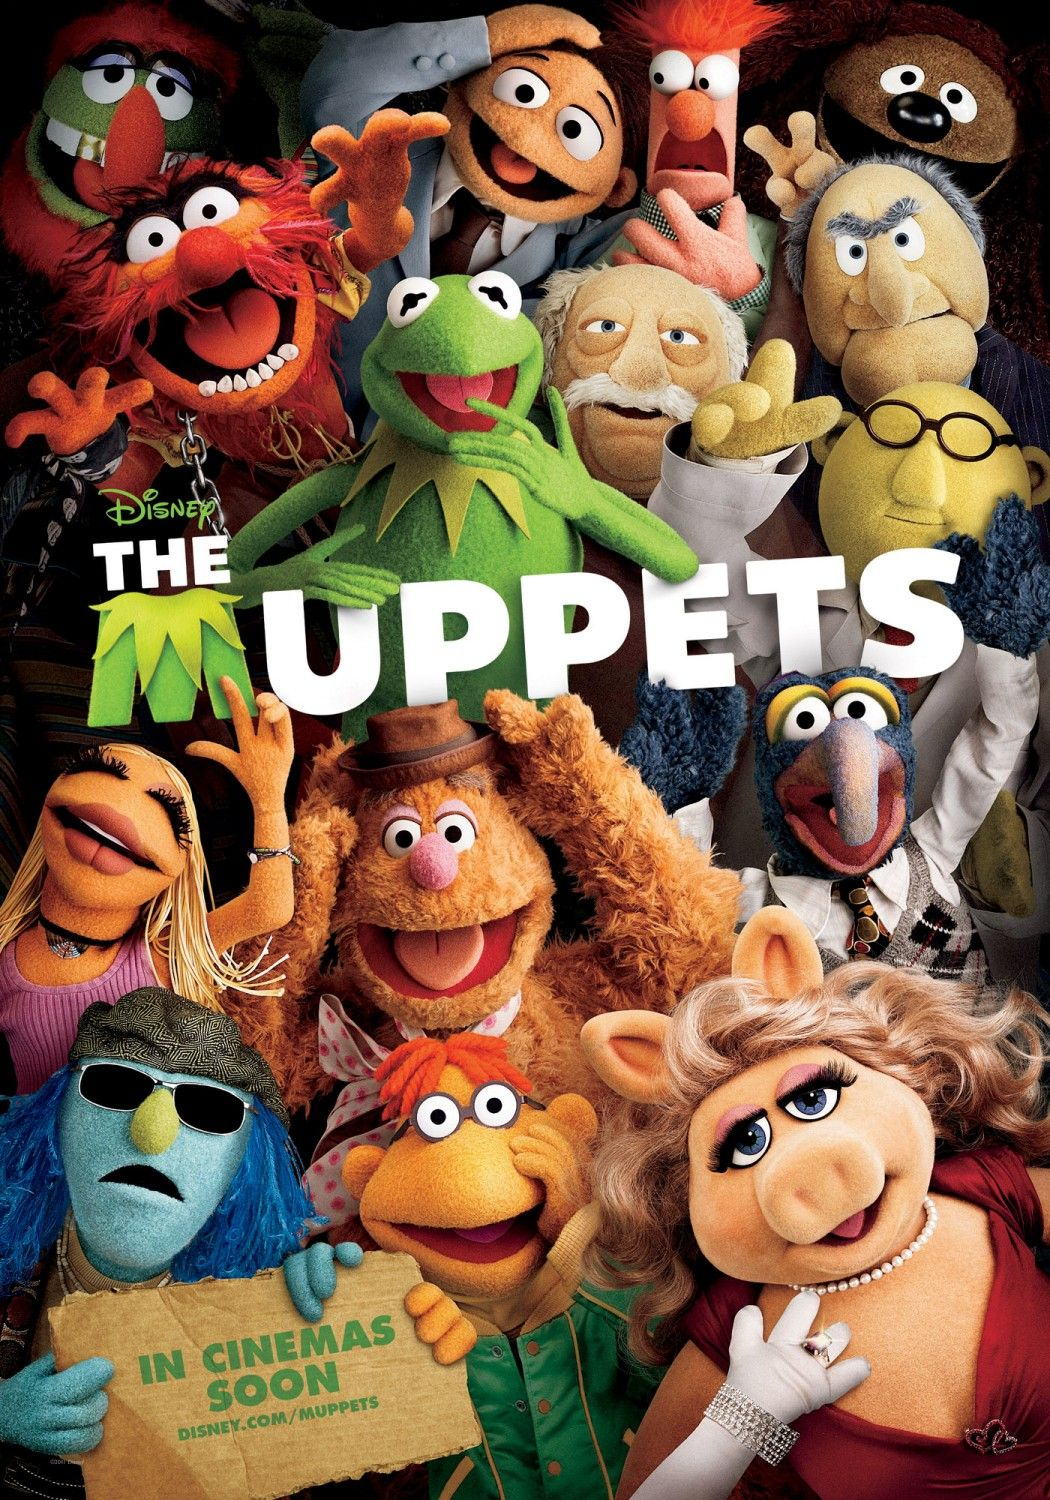 One of the best shows ever! The Muppets - enjoyed it as a kid and still do! Daily Inspiration